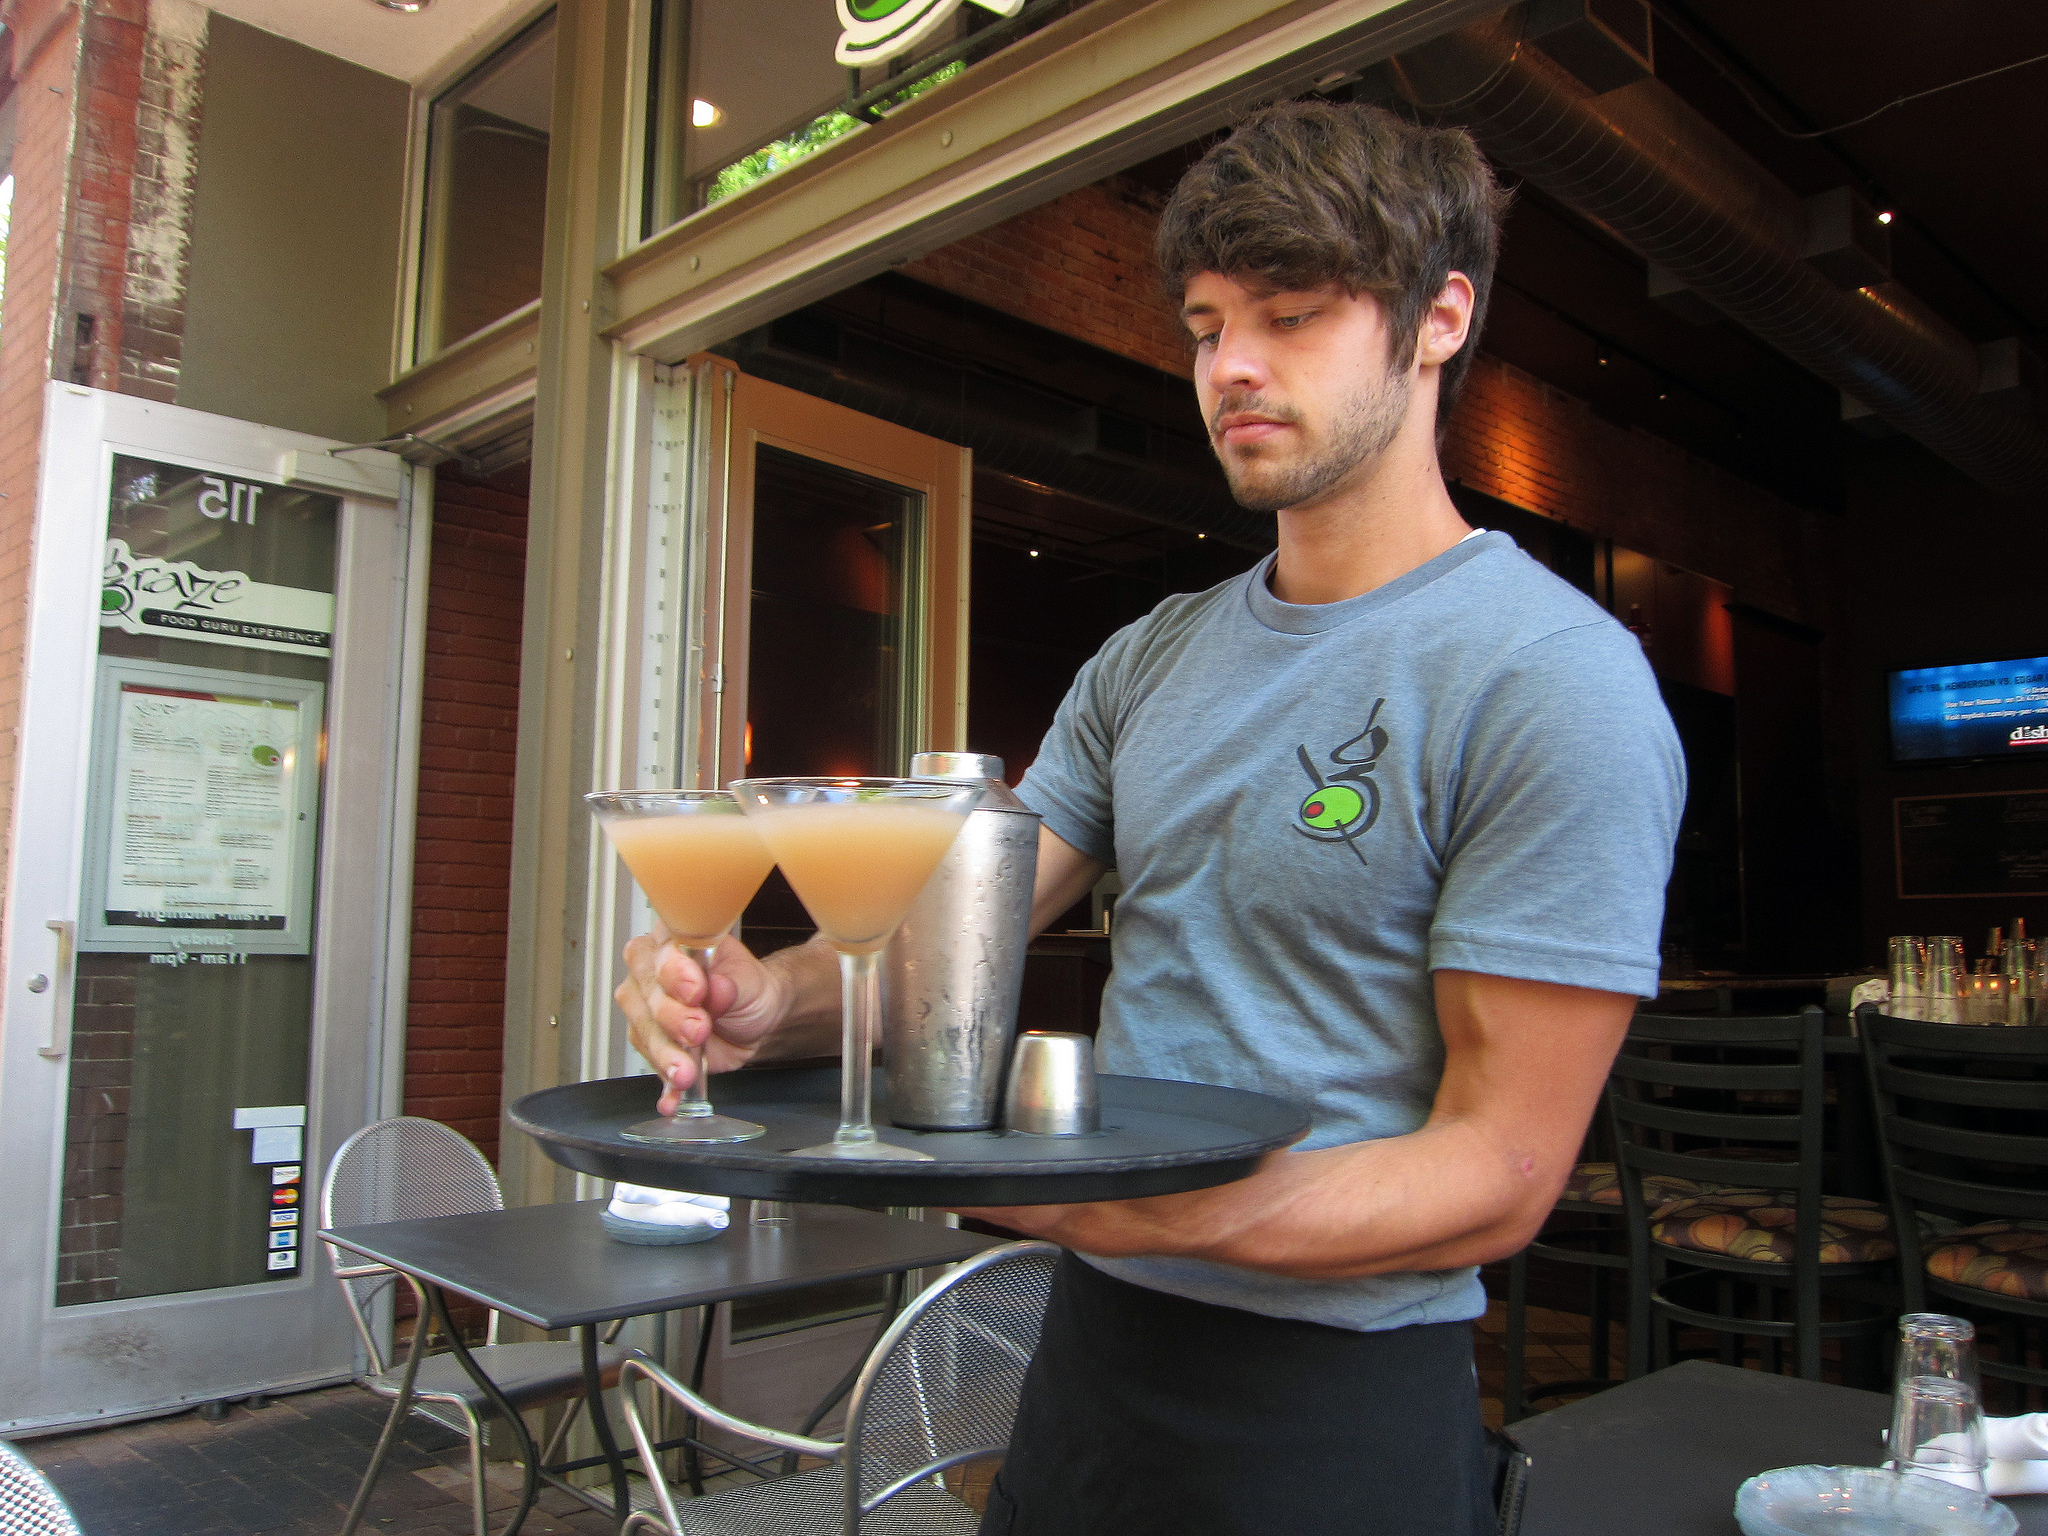 5 Things to Ask Your Waiter When You're Eating Out as a Vegan